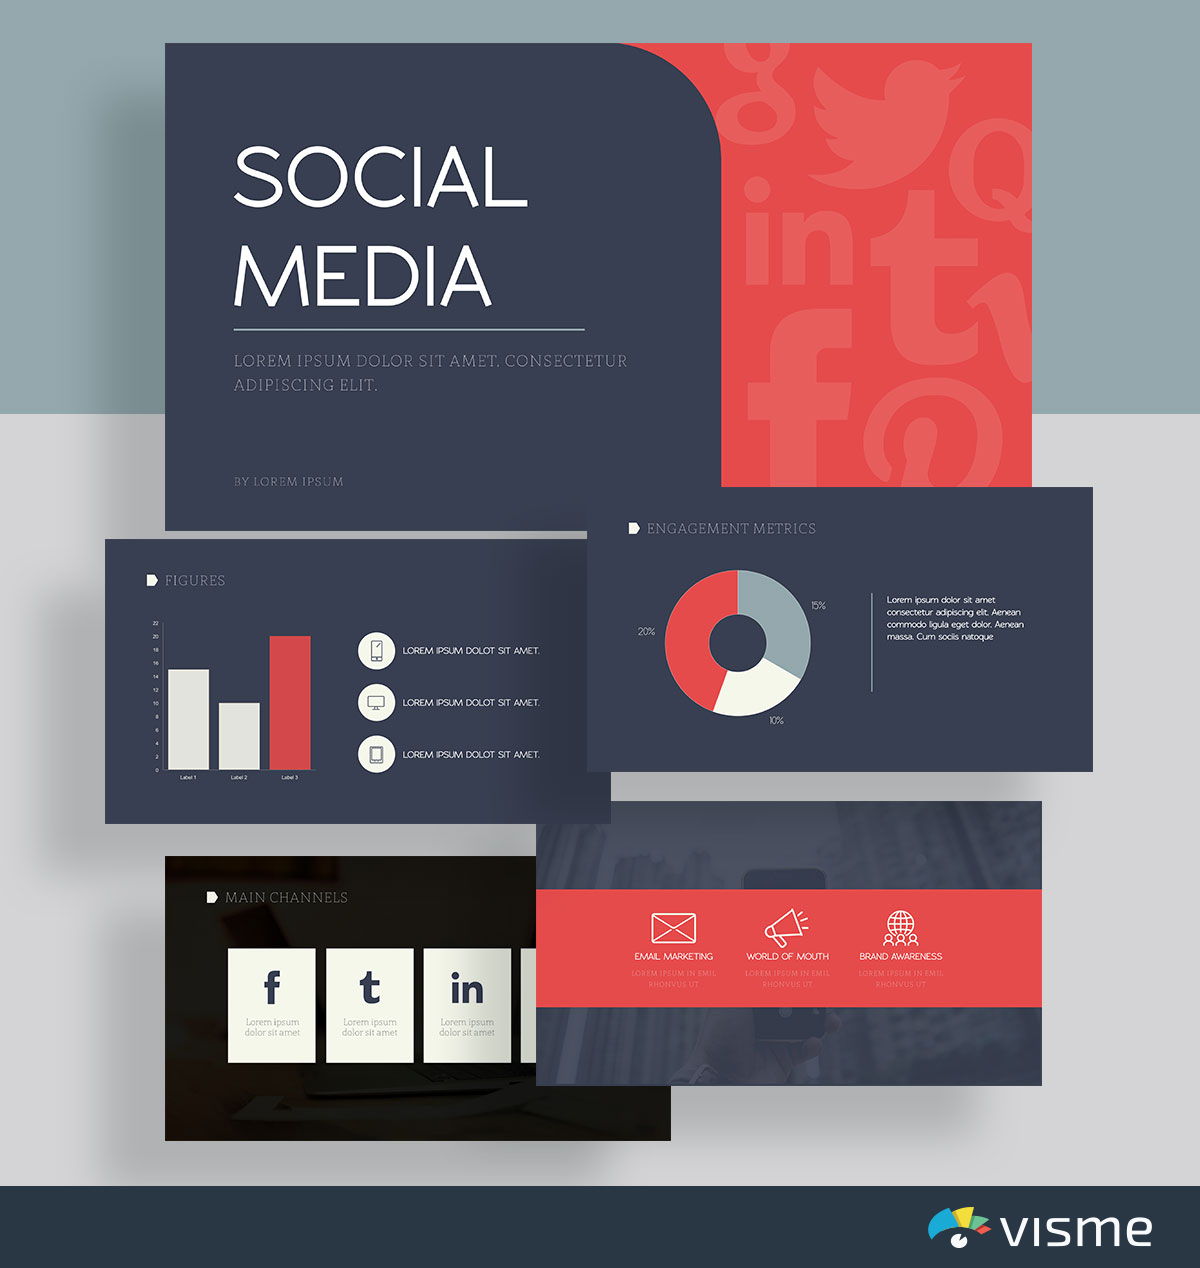 presentation slides - social media report template visme